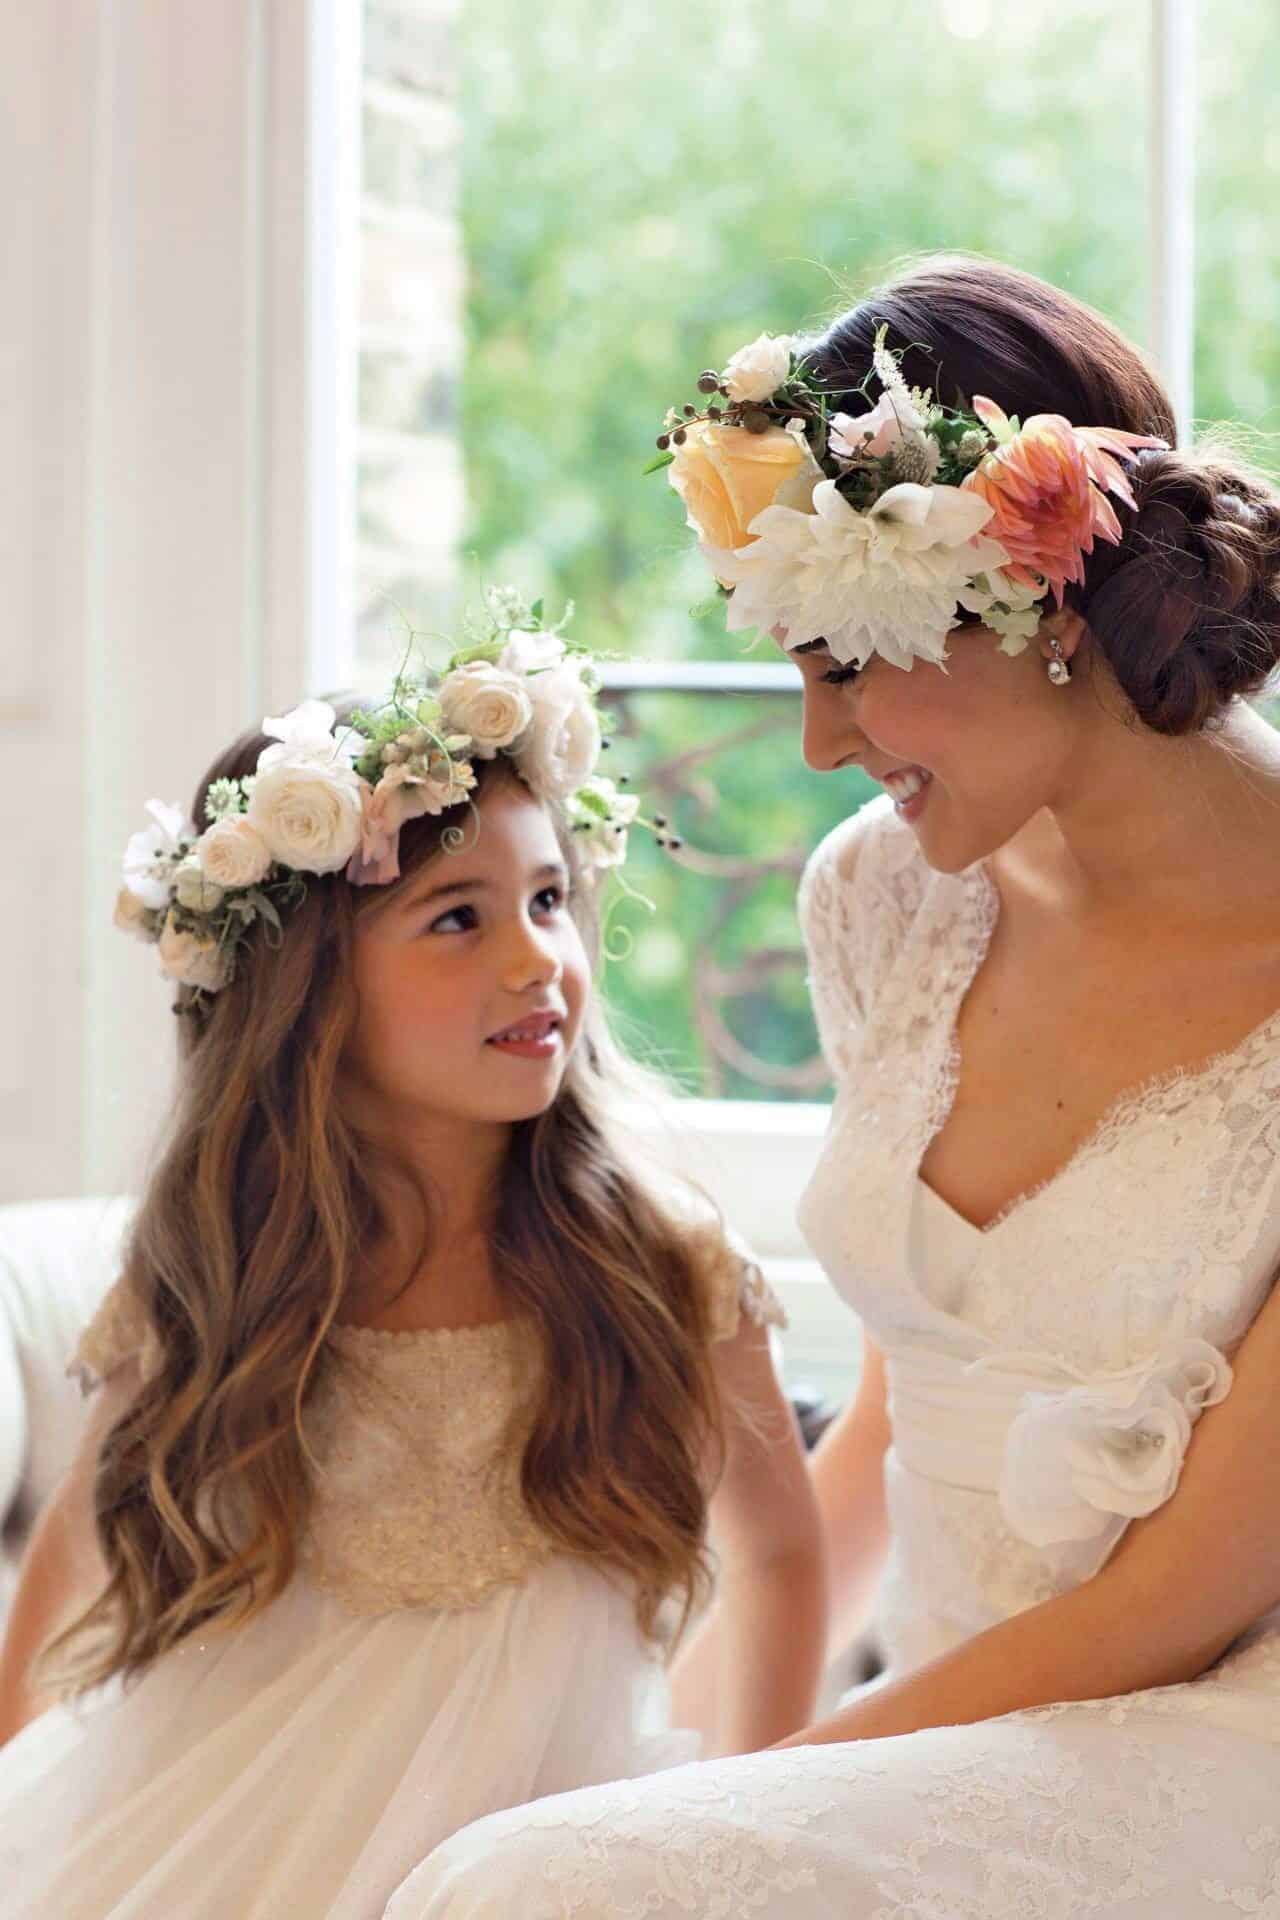 flower girl and bride with flower head wreath